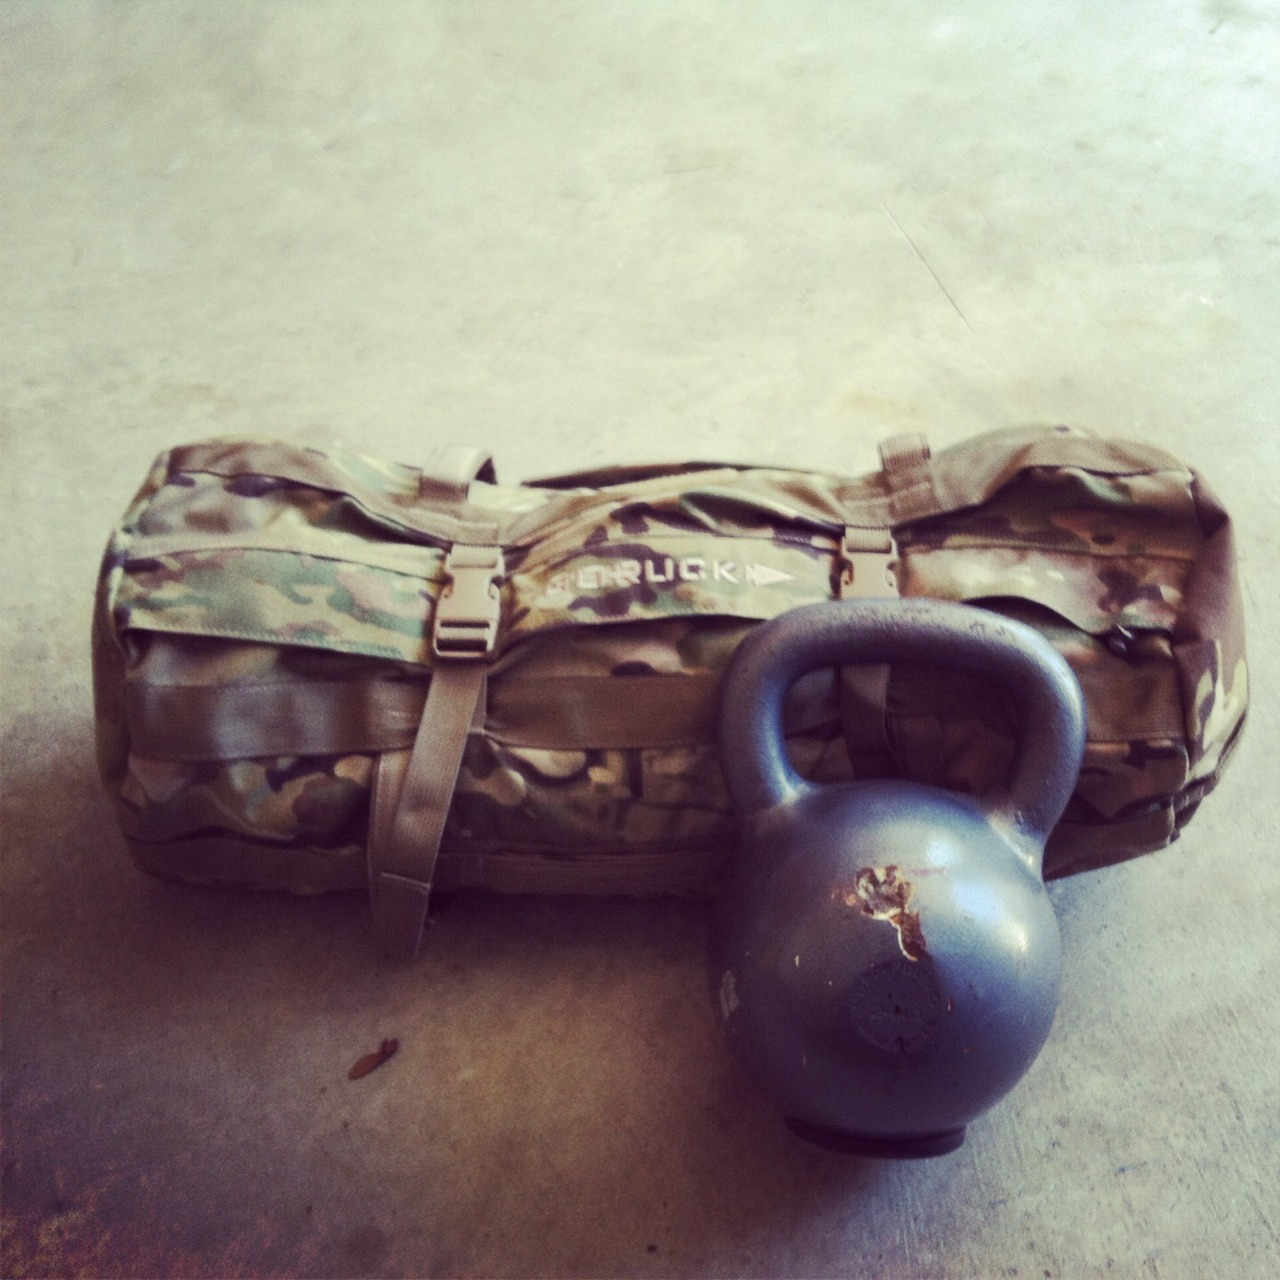 """Today begins my new workout schedule. It's focused on the Army Physical Fitness Test (APFT), getting selected for military schools, triathlons, and just being plain ol' bad ass. The base of the work out is from Military Athlete's Special Forces selection and Pre-Ranger school work out programs. I try to focus on one or two lifts a day along with a cardio exercise. The weights and reps are determined using the 5-3-1 method. The biking and swimming workouts are pulled from Triathlete Magazine's """"Essential Week by Week Training Guide."""" Crossfit dominates most of the workouts. WODs pulled from the Crossfit main site and the web sites of some Crossfit boxes fill in gaps. I hope to write it all down into a proven program once I complete it.   A few work outs at the beginning May have ellipticals and stationary bikes in it as my foot recovers from the 38 mile walk.  WOD: 10min 80lb sand bag get ups  8 mile stationary bike  3rds 5 power cleans @65% max (150lb) 10 toes to bar 20 kettlebell swings 50lb 8:55  ½ mile elliptical highest setting 10:11 ½ mile run 4:43 21/2 mile bike 10:25"""